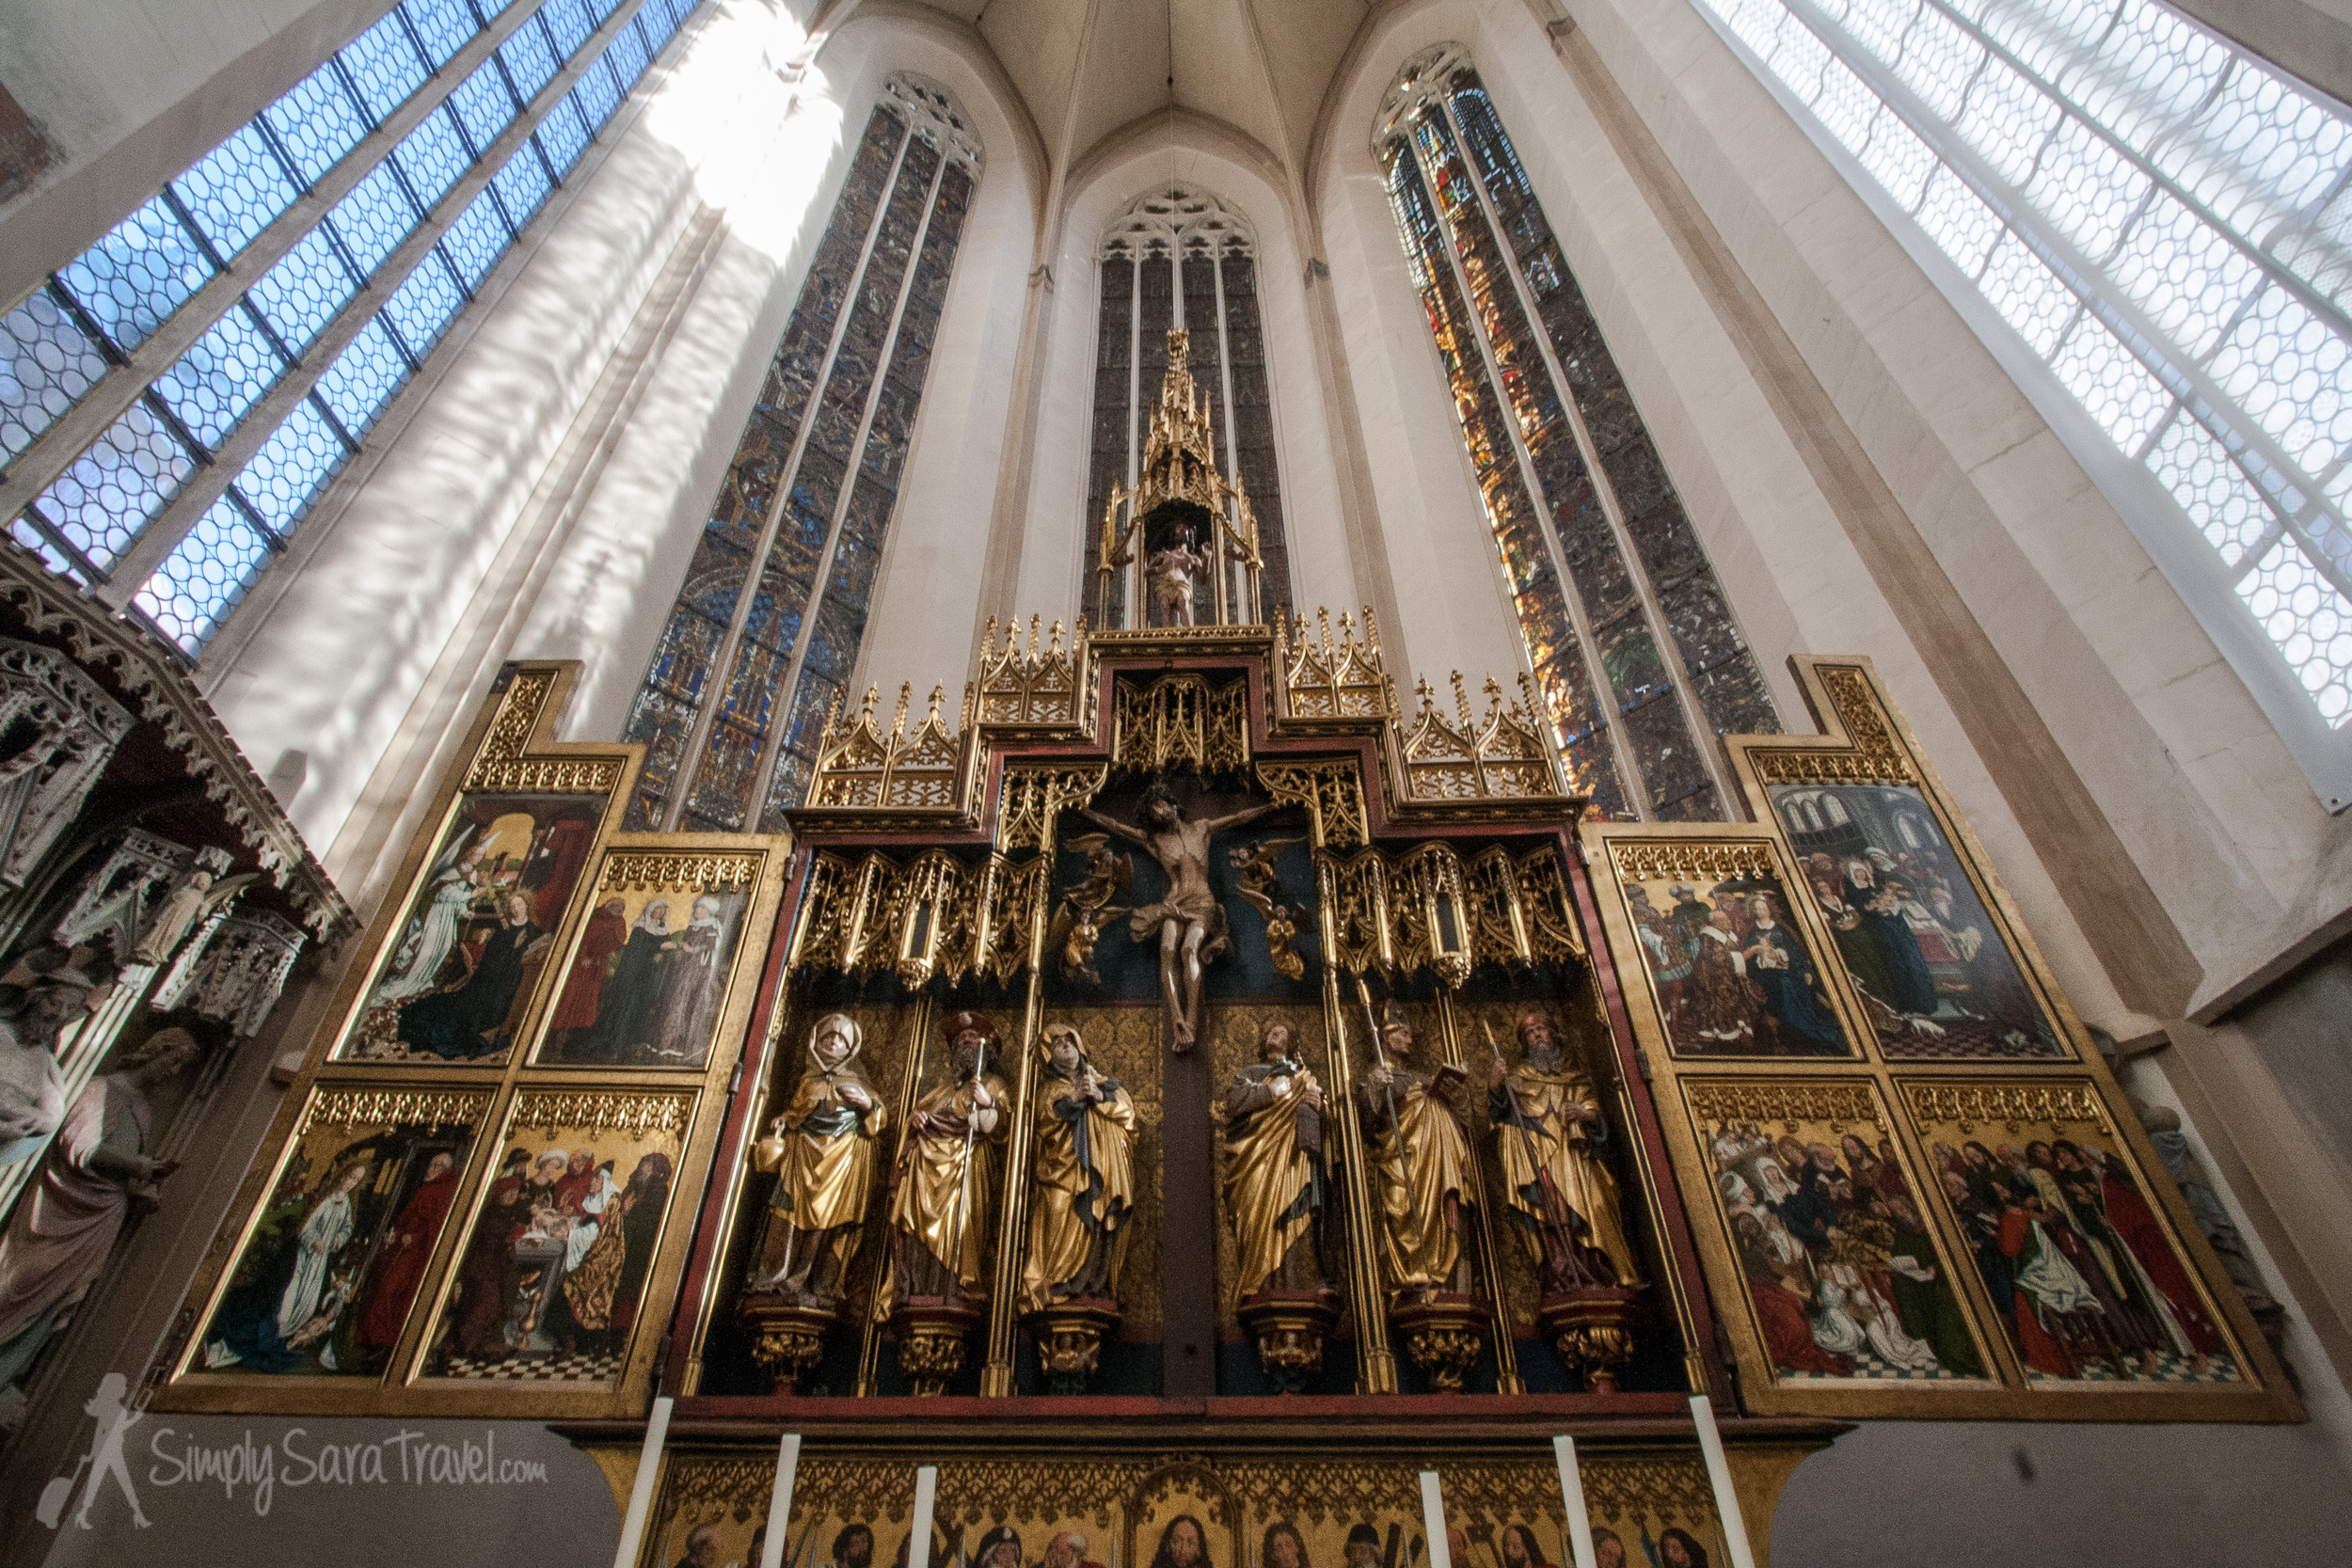 The high alter by Friedrich Herlin (1466)